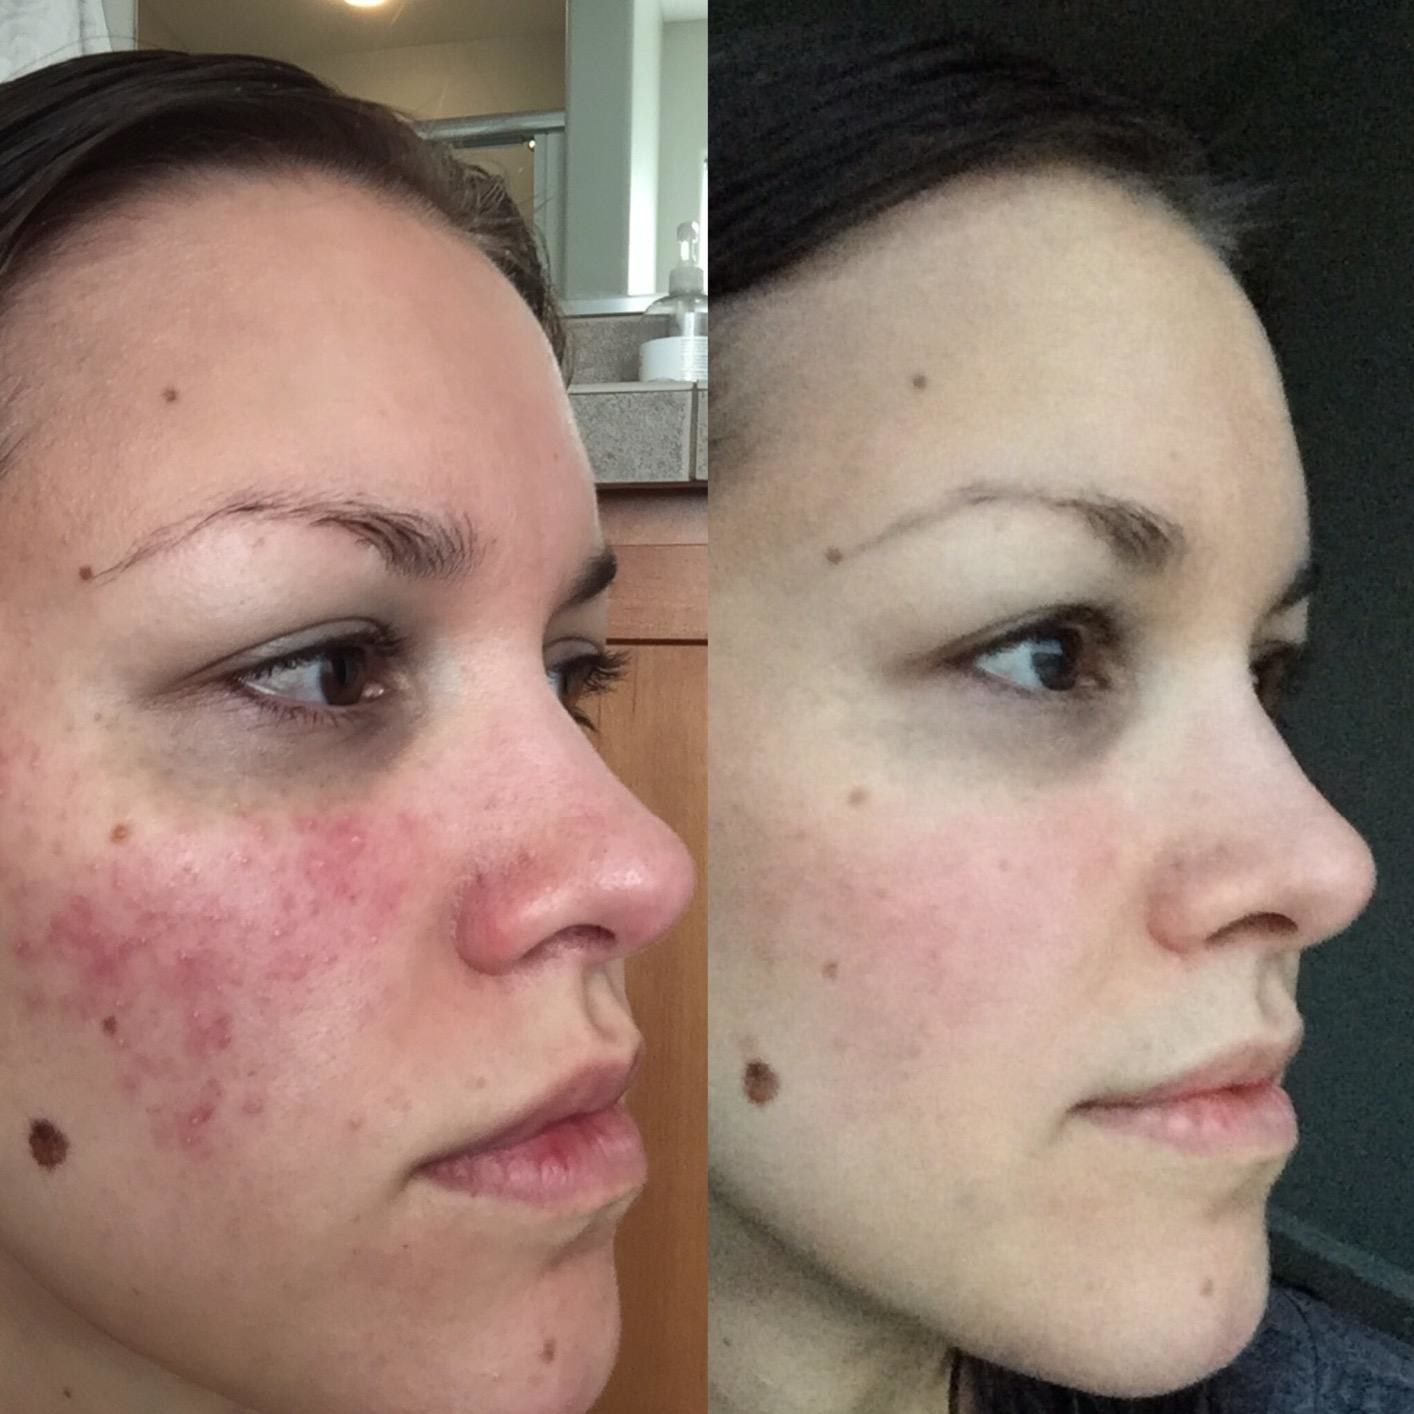 on the left reviewer with very red cheeks, on the right the same reviewer with much less redness